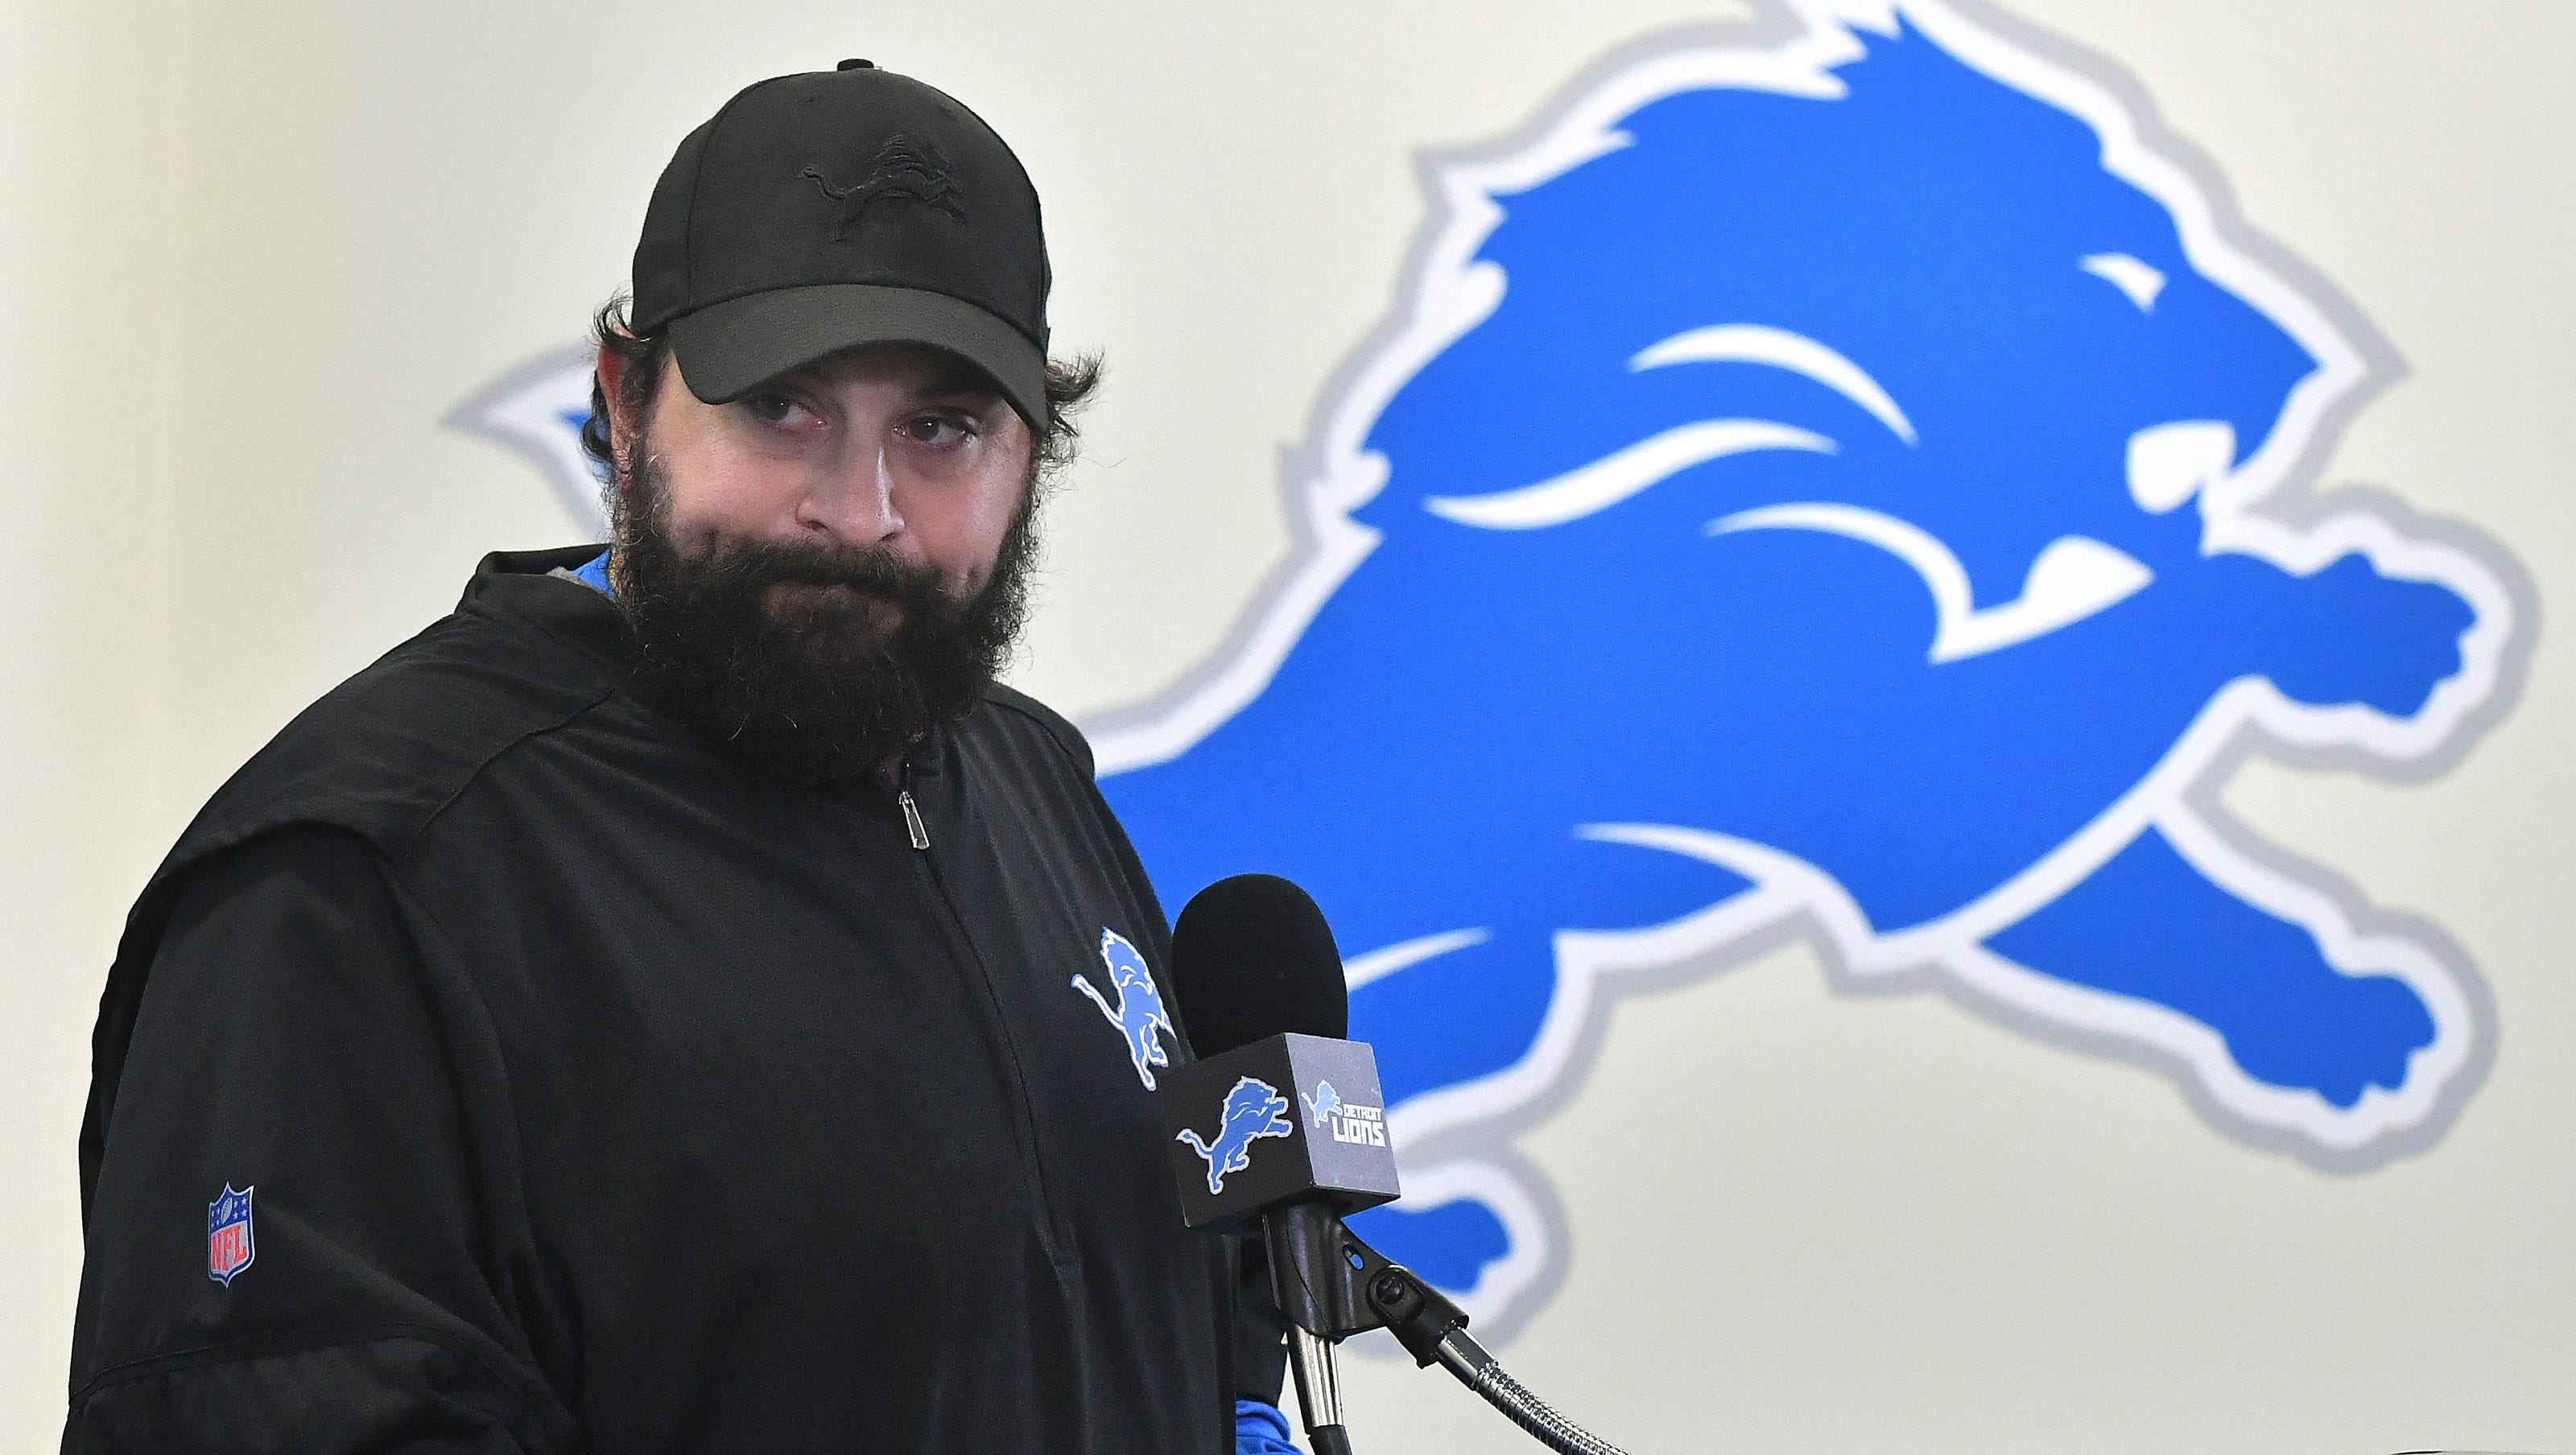 Lions' Patricia done talking about 1996 allegations